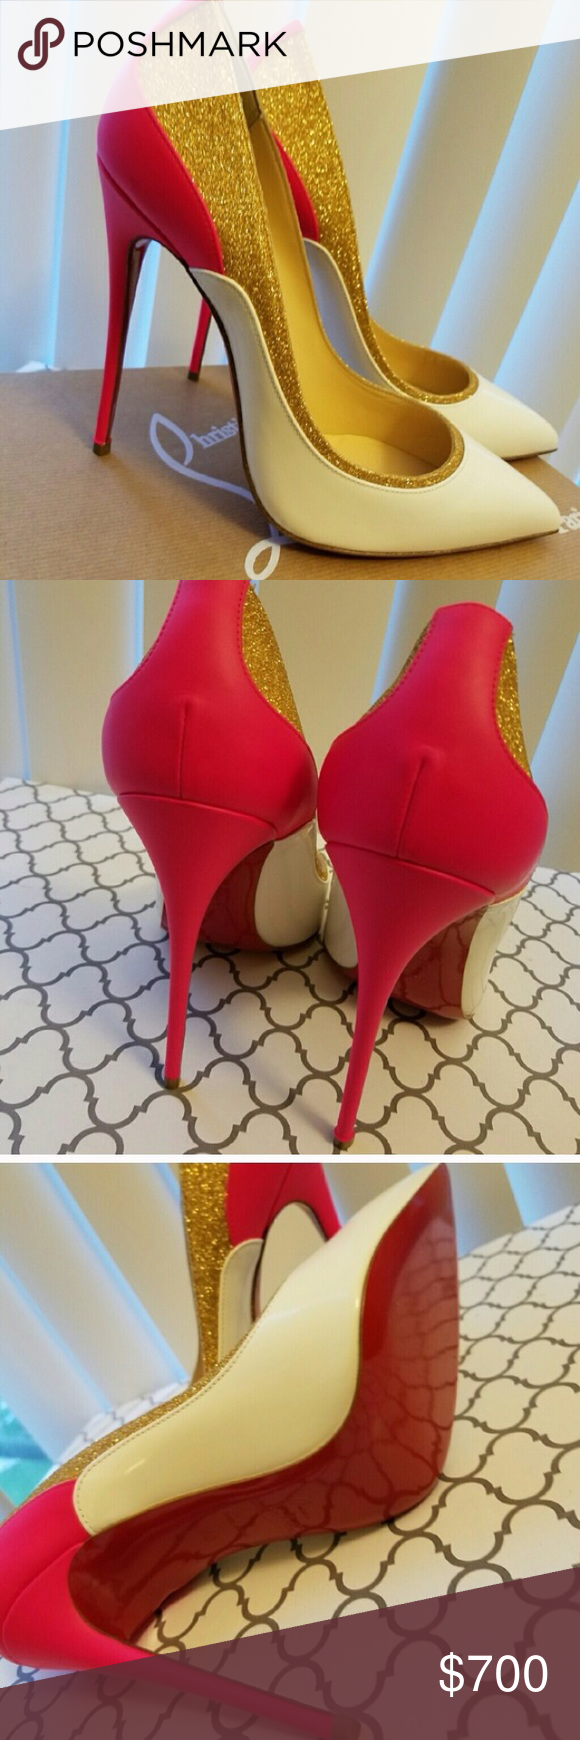 Christian Louboutin 120 mm Tucksic stiletto heels Brand new with box, dust bags, and heel taps. Euro size 40 (10 USA) but runs small. These would best fit a USA size 8 to 8.5 foot. Beautiful white and fuschia leather with gold glitter. Truly a work of art. Smoke free home and in PRISTINE condition. Authentic. Make me a reasonable offer! Christian Louboutin Shoes Heels